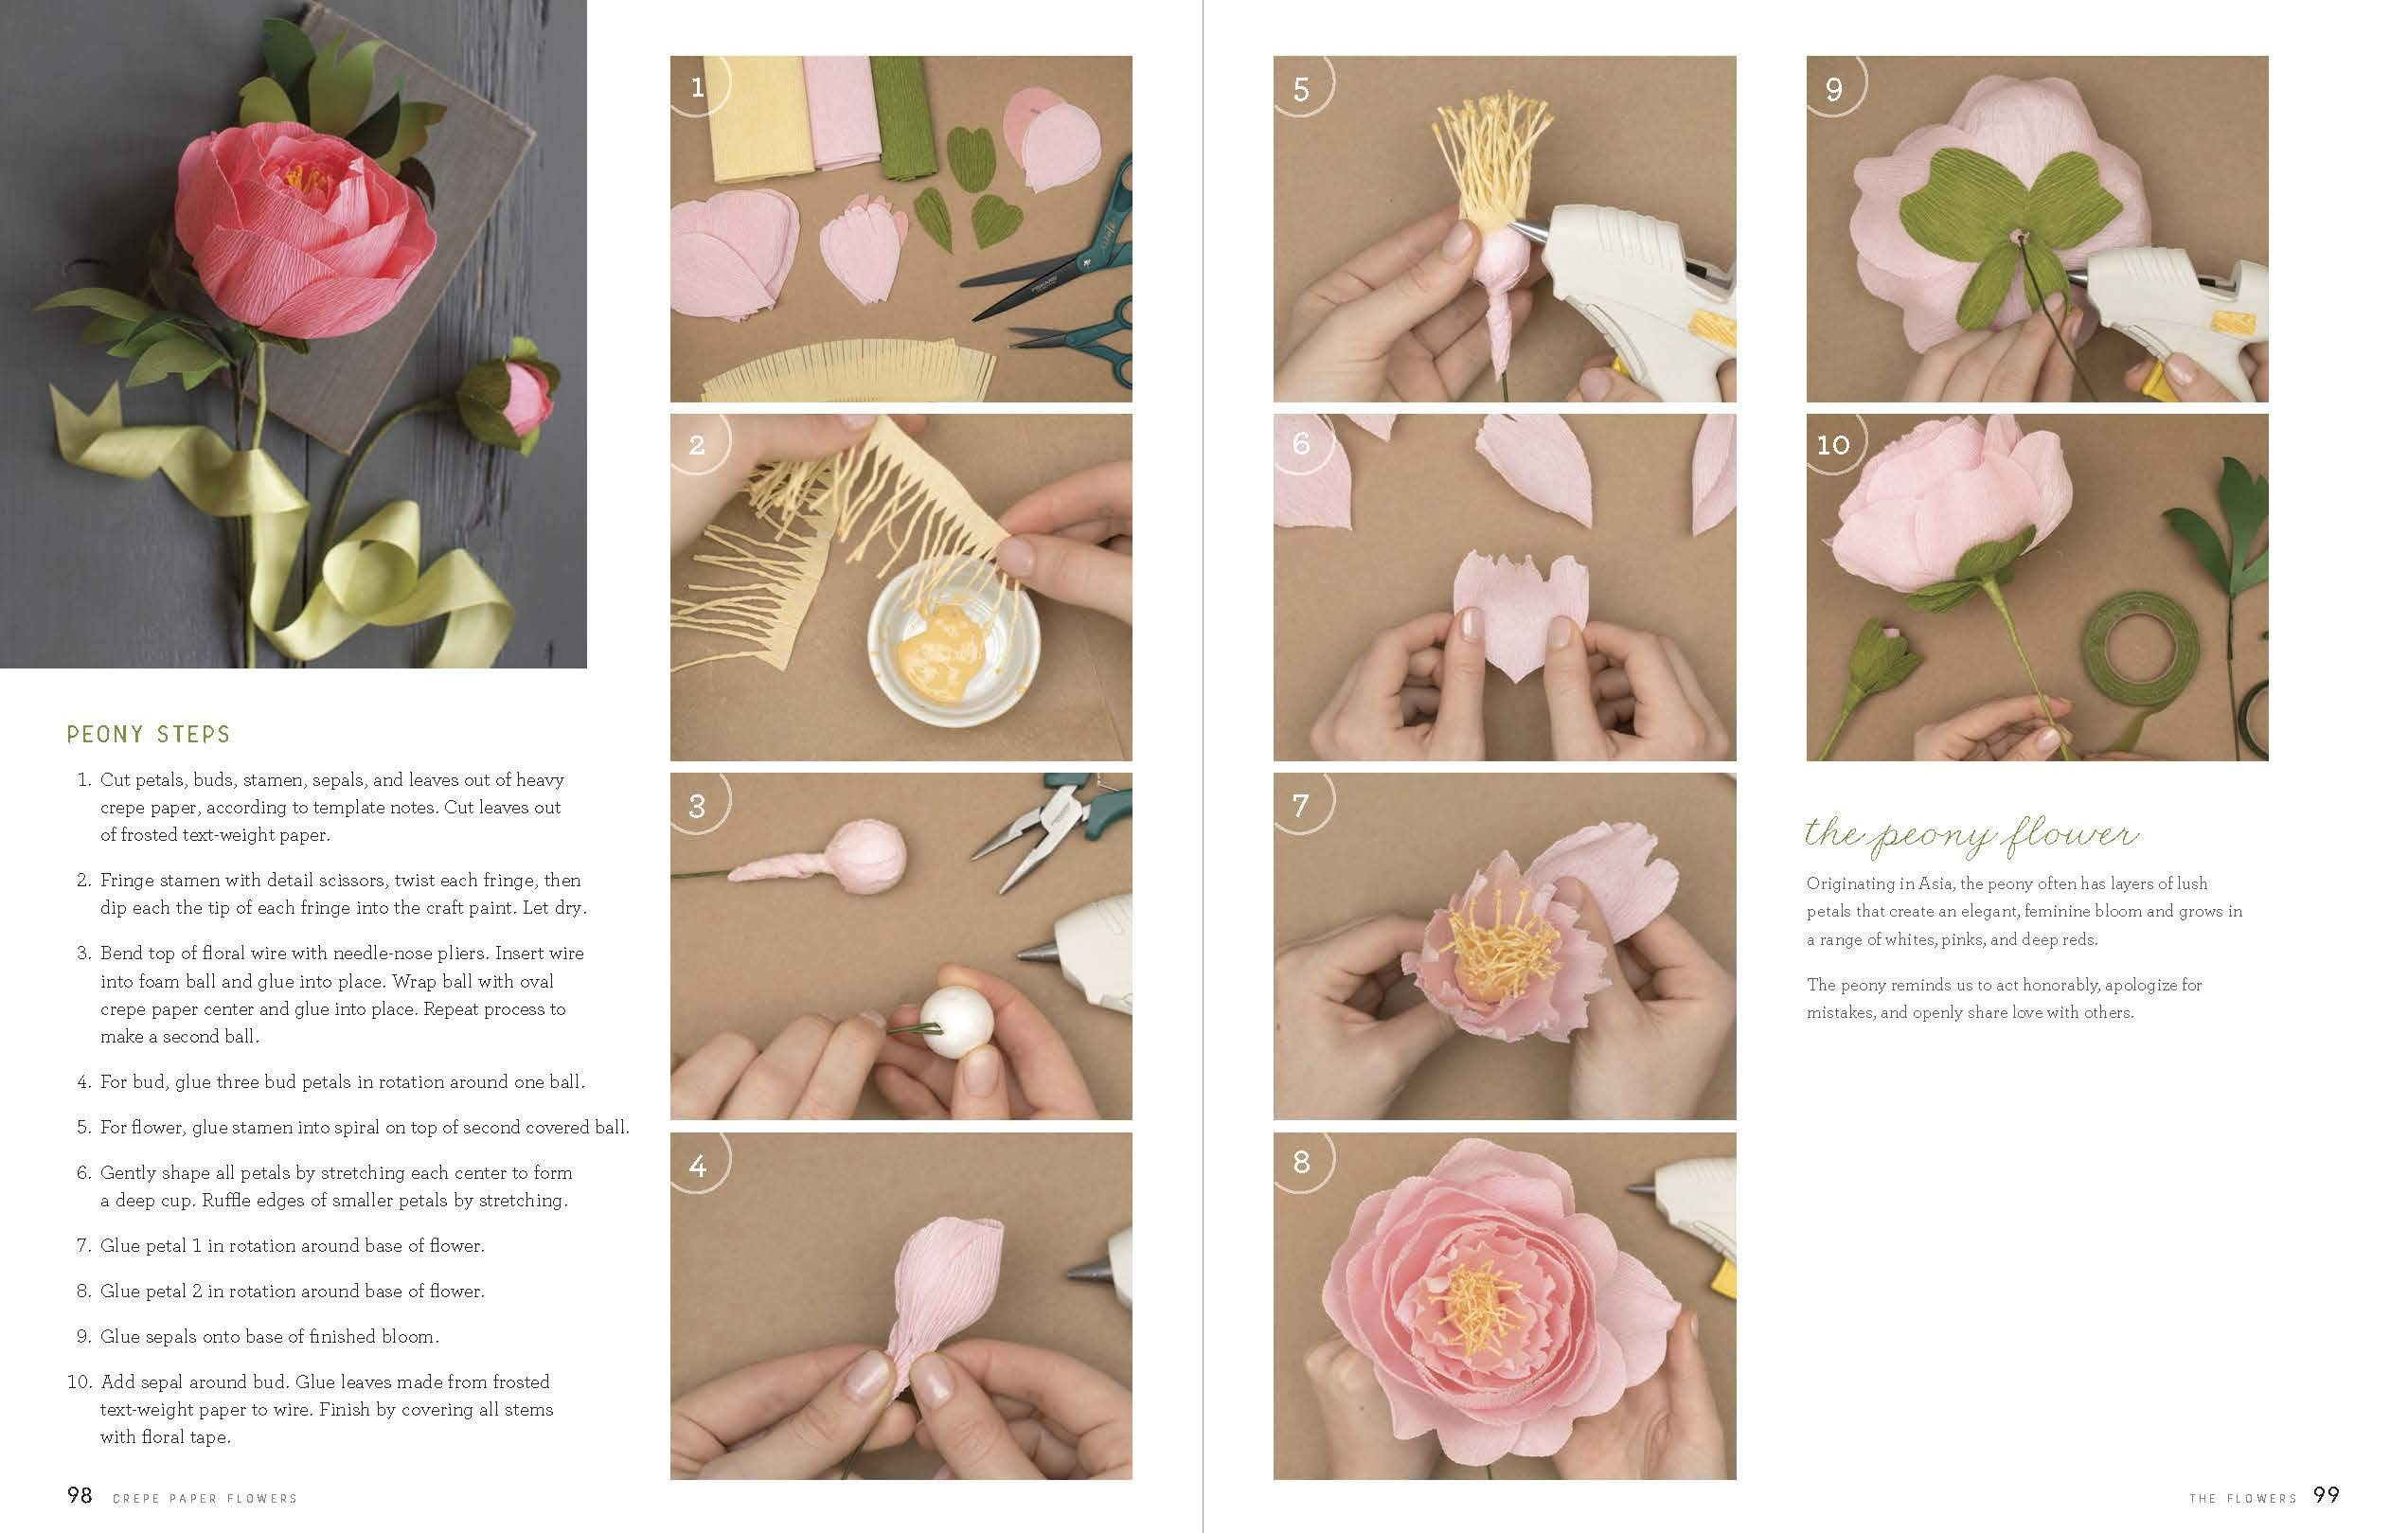 Crepe paper flowers the beginners guide to making and arranging crepe paper flowers the beginners guide to making and arranging beautiful blooms lia griffith 9781984822376 amazon books mightylinksfo